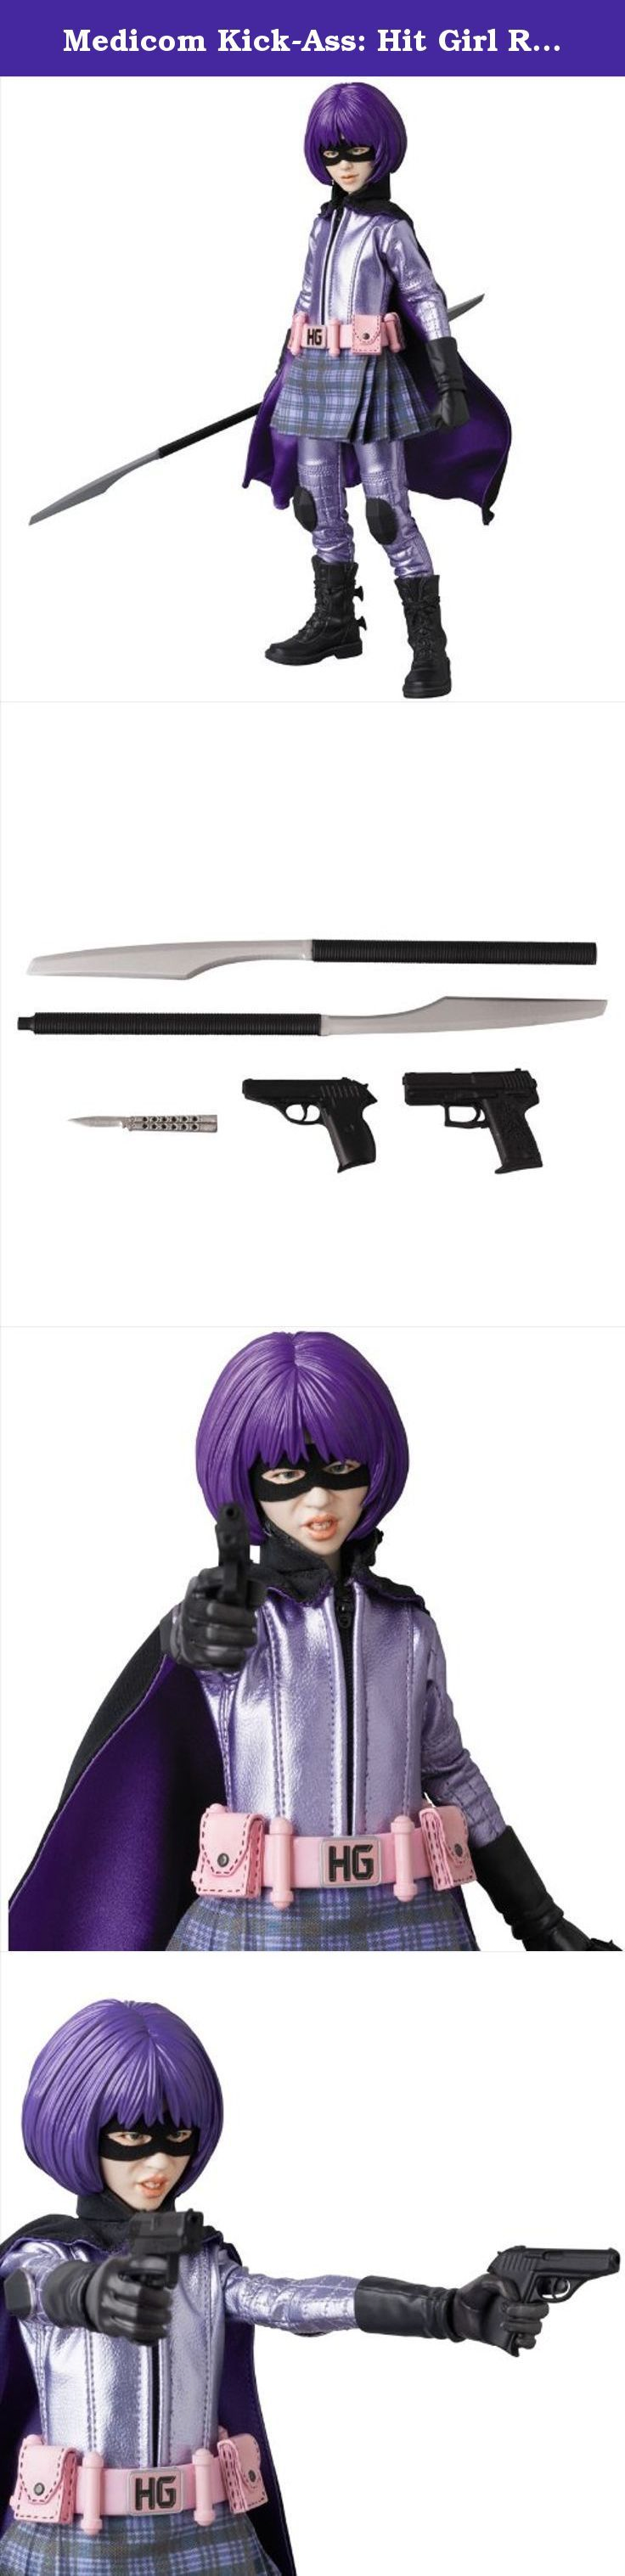 "Medicom Kick-Ass: Hit Girl Real Action Hero Figure. From MEDICOM Toy. Capturing the likeness and fierce performance of actress Chloe Grace Moretz in a figure standing approximately 12"" H, this Real Action Figure of Hit Girl from the original Kick Ass comes with a detailed reproduction of her costume, alternate facial expressions and plenty of weapons!."